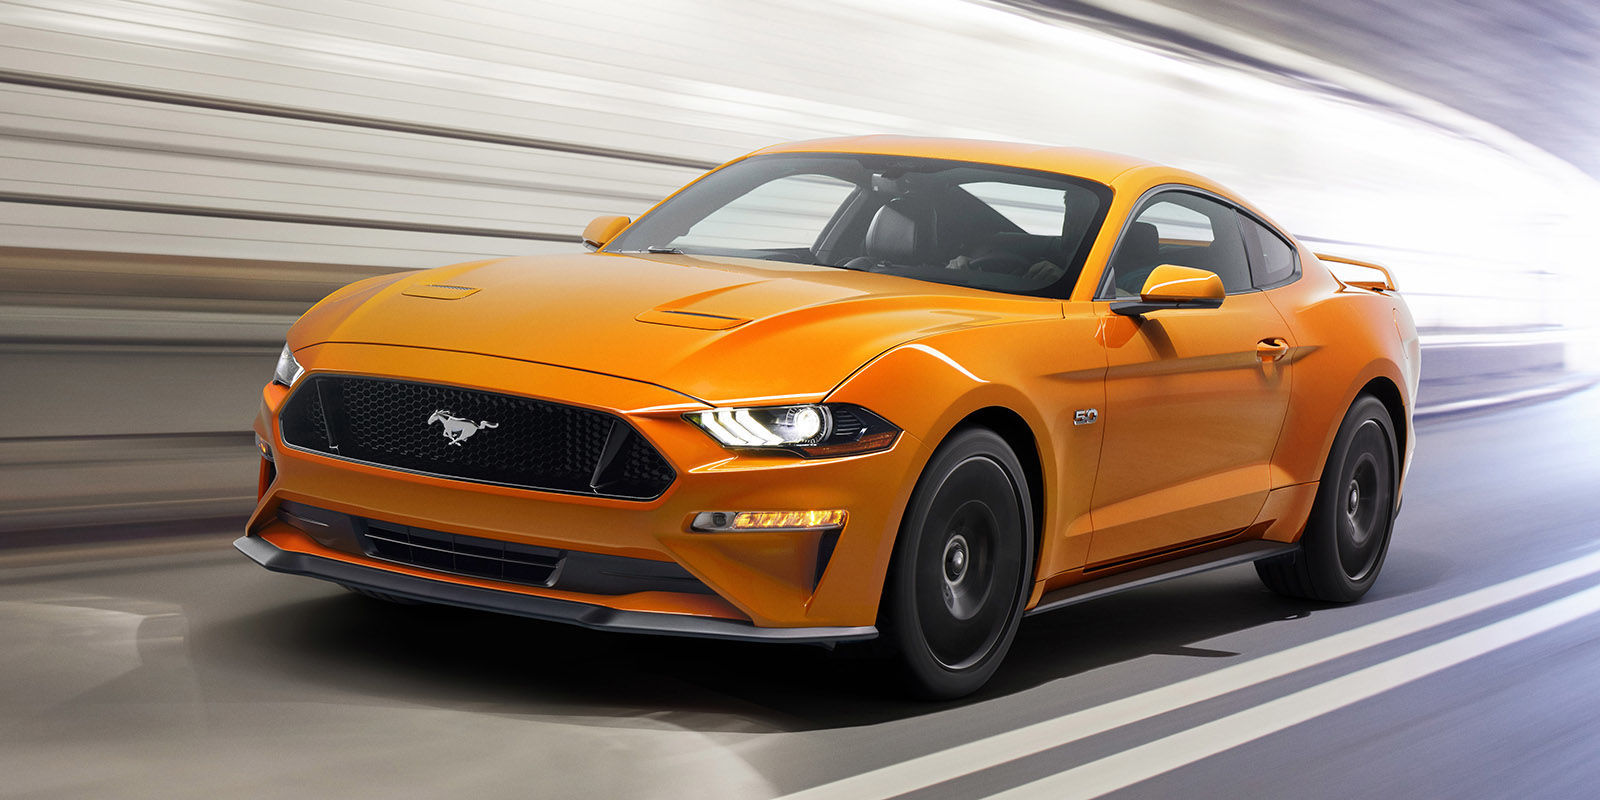 The 2018 Ford Mustang gets more power and 10 gears